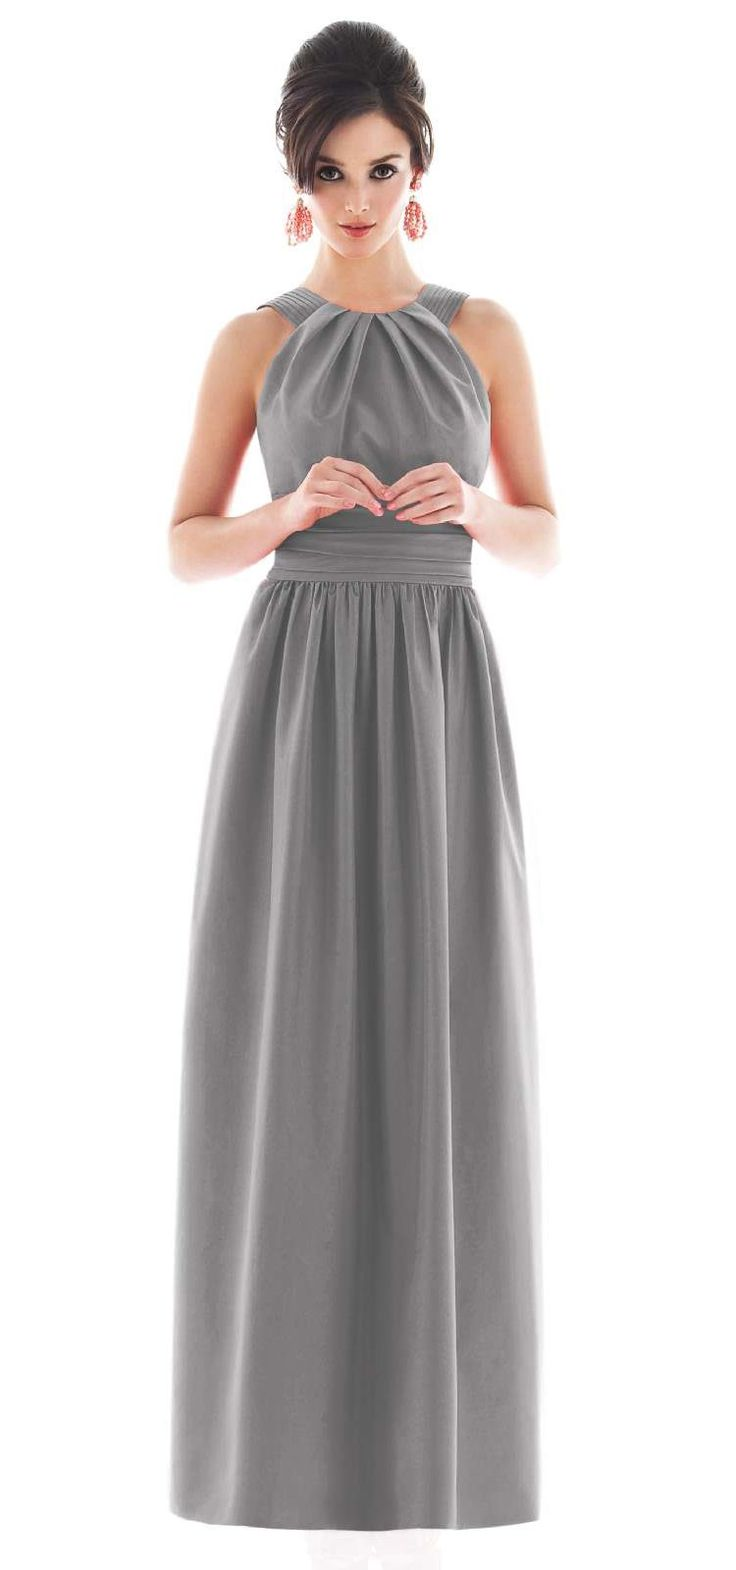 17 Best images about GRAY BRIDESMAID DRESSES on Pinterest | Wrap ...